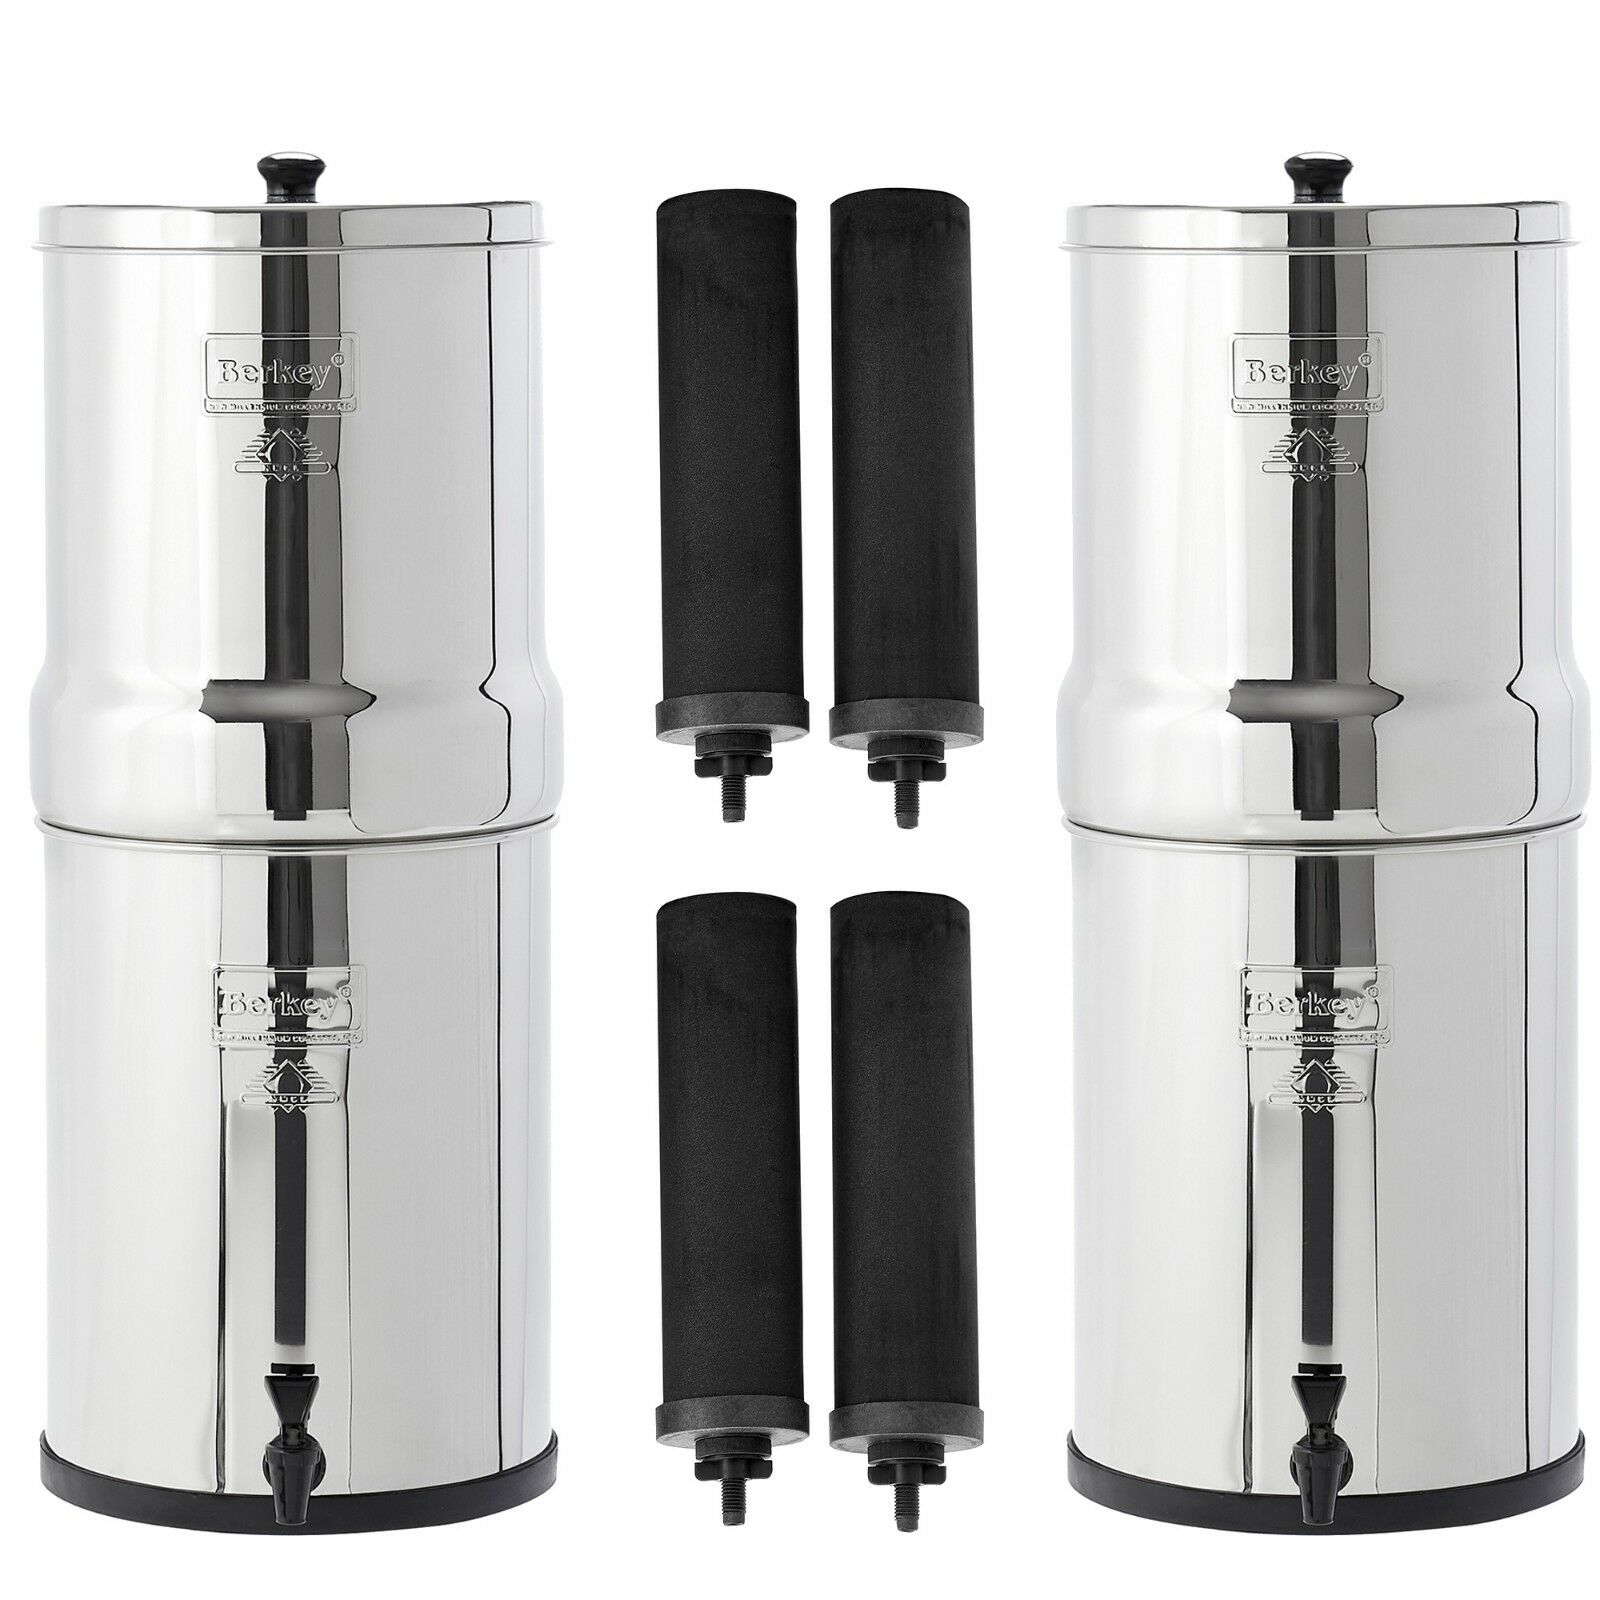 Two Imperial Berkey Water Filter Systems Bundle - 5% OFF